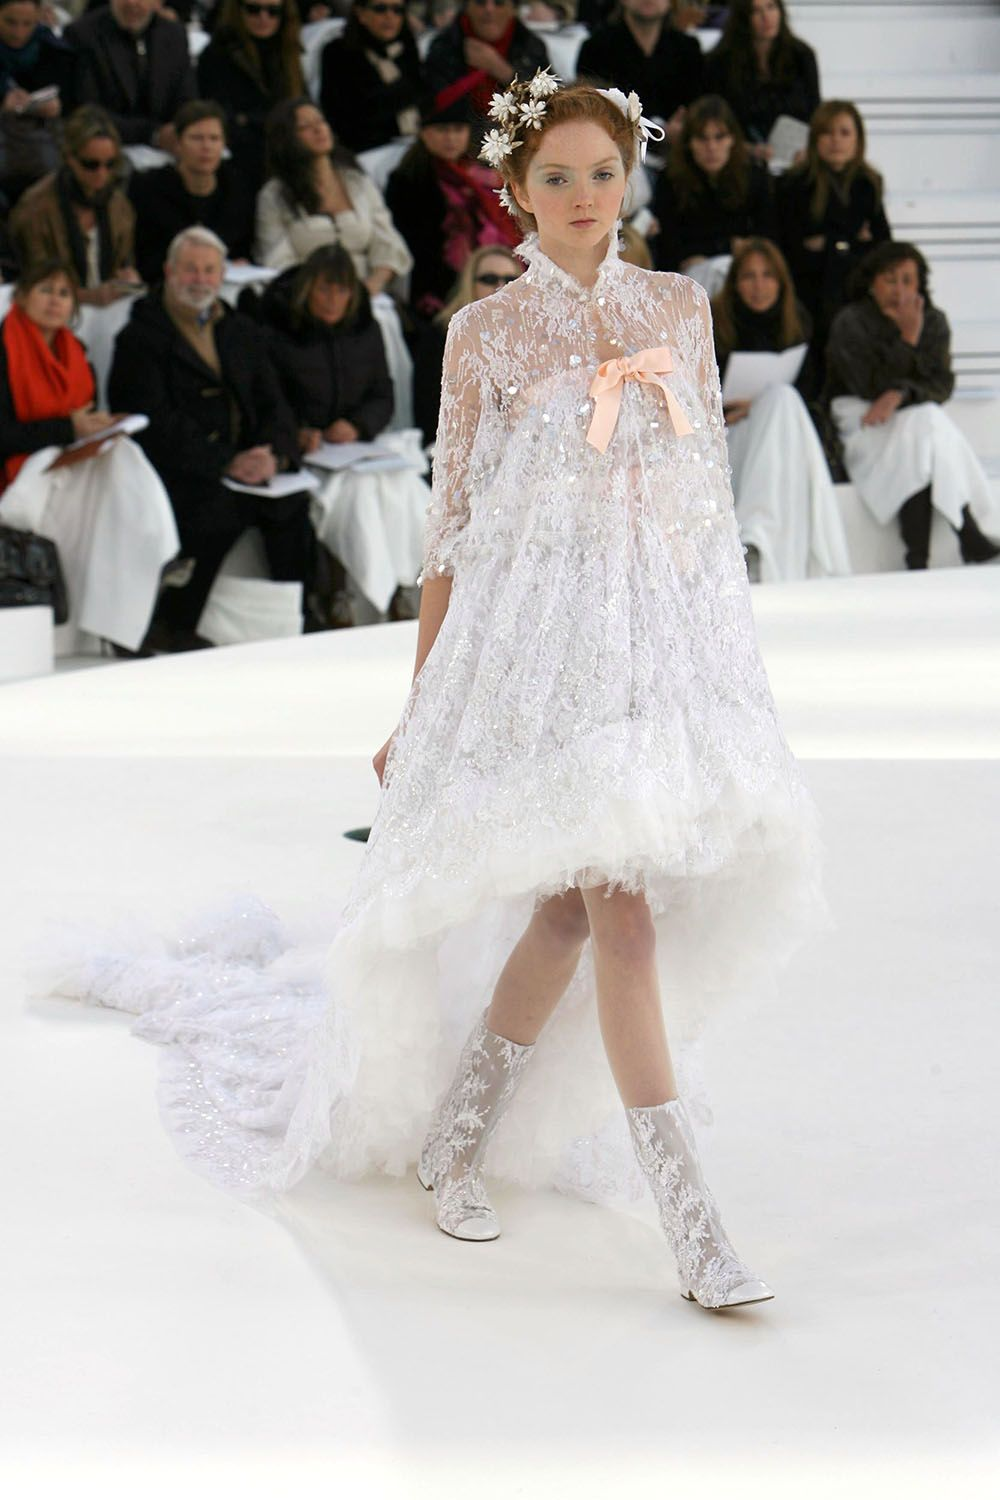 Wedding Dress Styles Chanel Here Comes The Bride Lily Cole